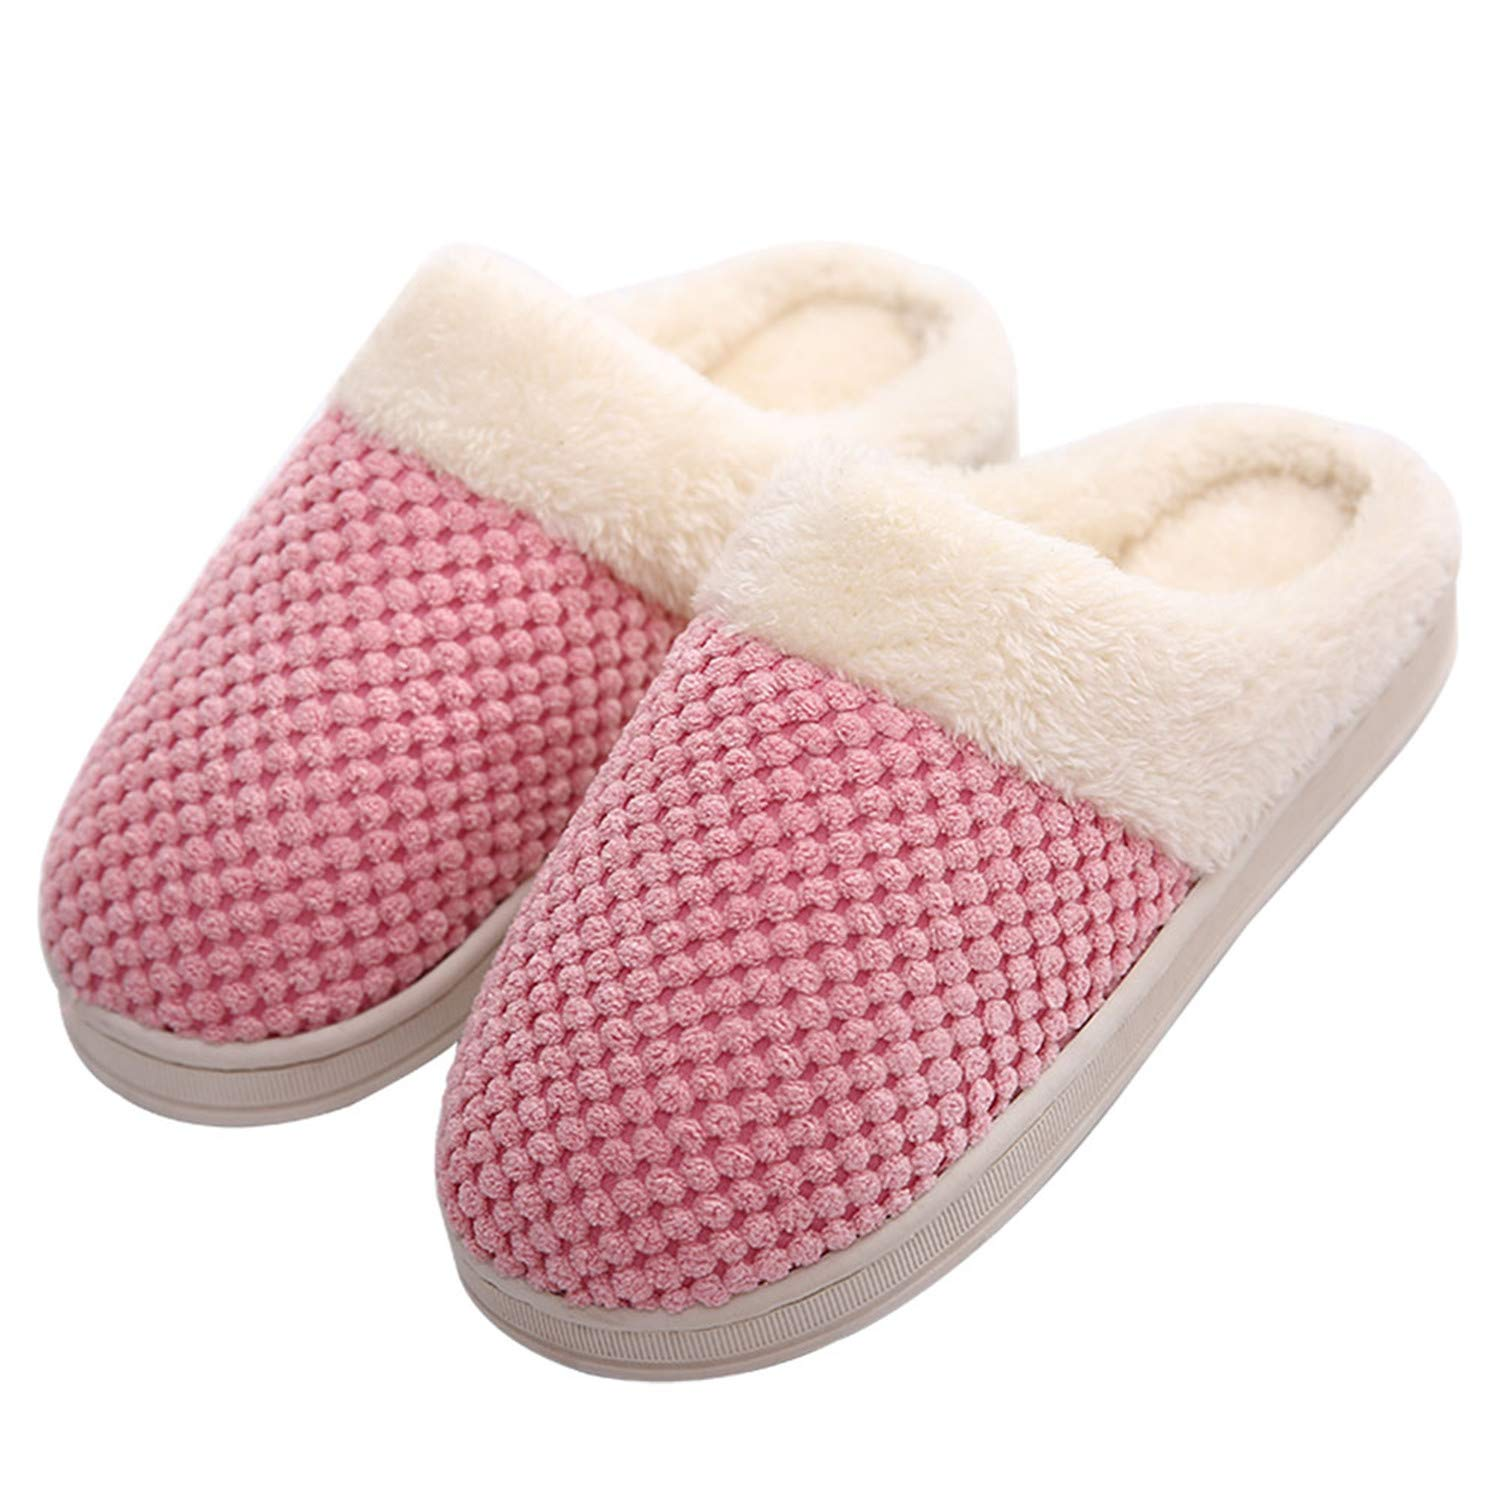 Women's Memory Foam Slippers Plush Lining Slip-On Clog Indoor Slippers House Shoes,Pink 40-41